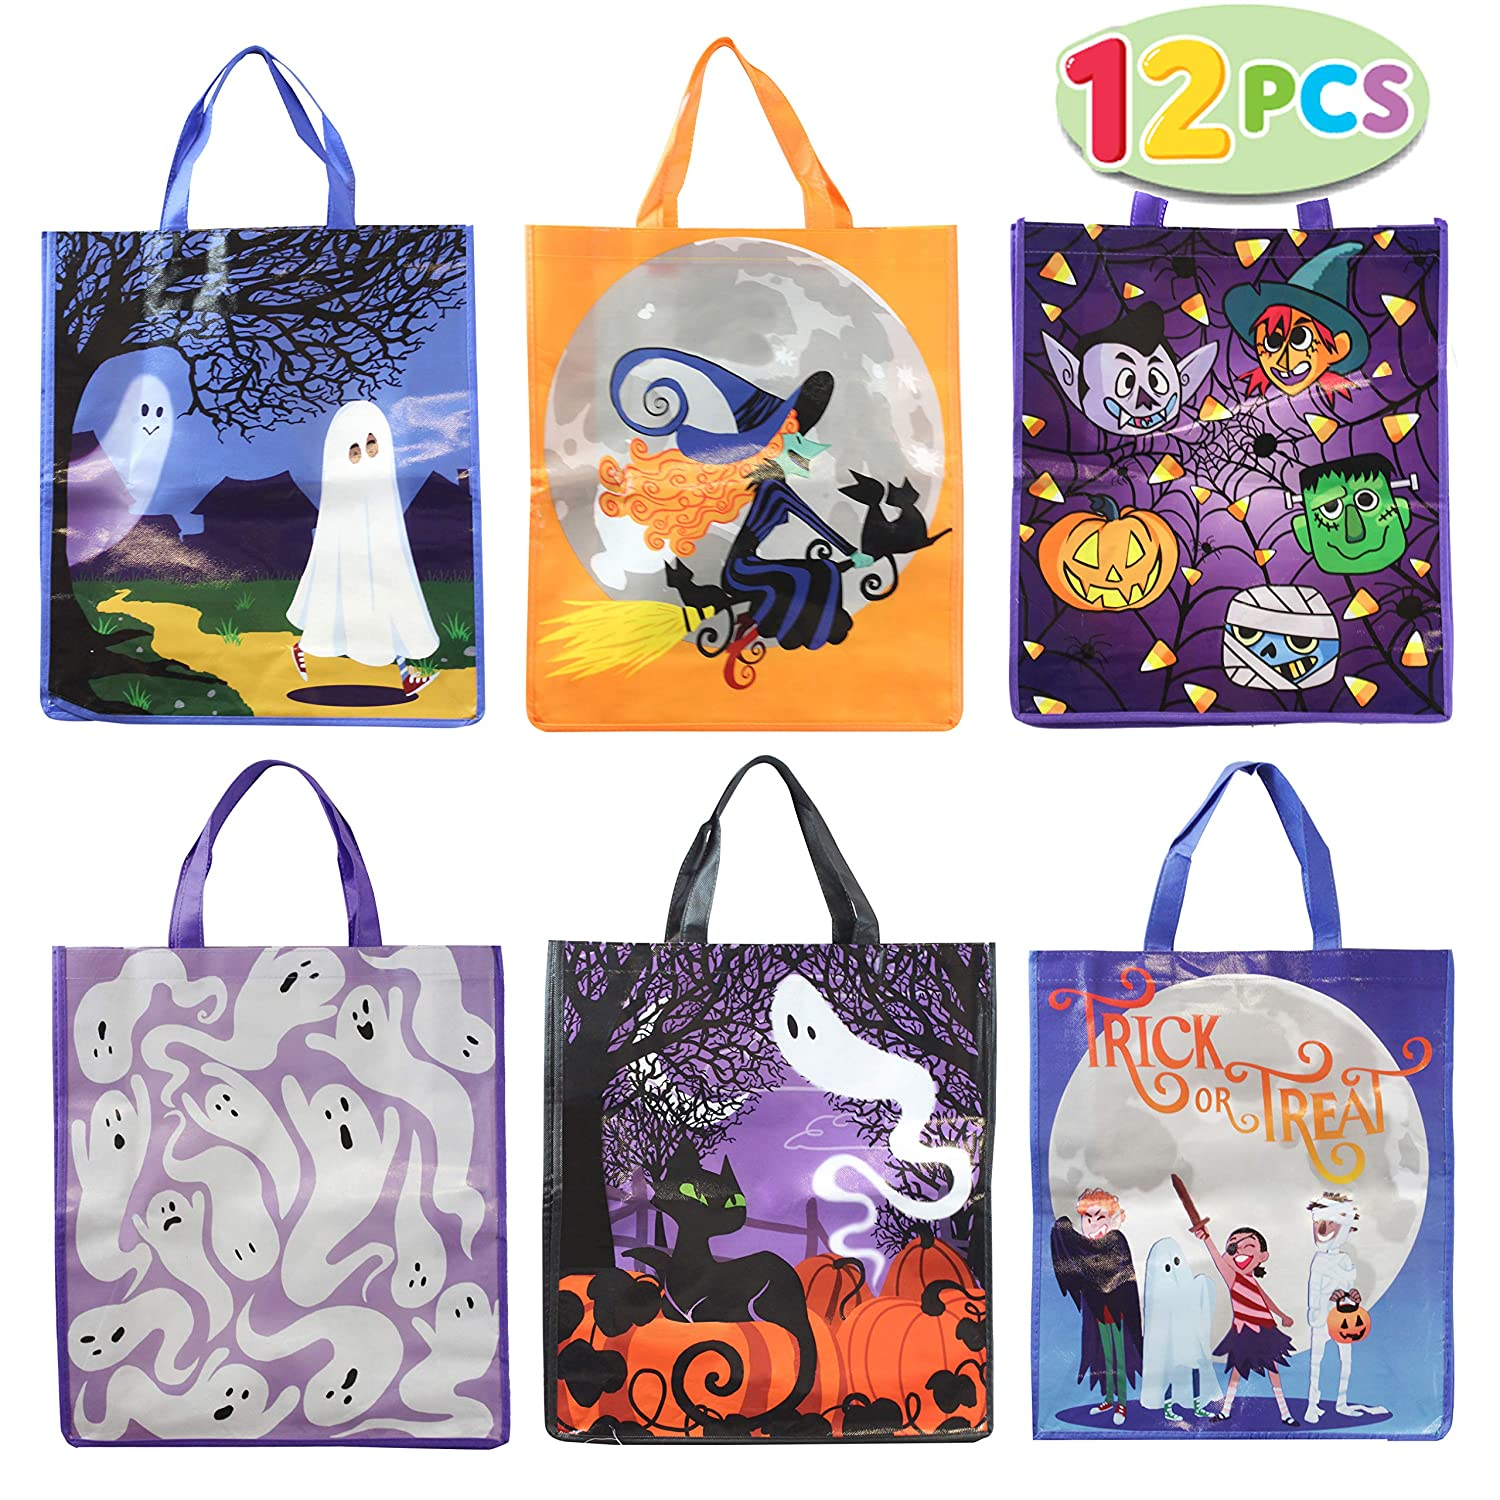 "12 Halloween Large Treat Goody Tote Bags 17"" x 15"" For Halloween Trick or Treat Candy Bags, Gift Goodie Bags, School Classroom Giveaway Bags, Party Favor Supplies Joyin Inc"